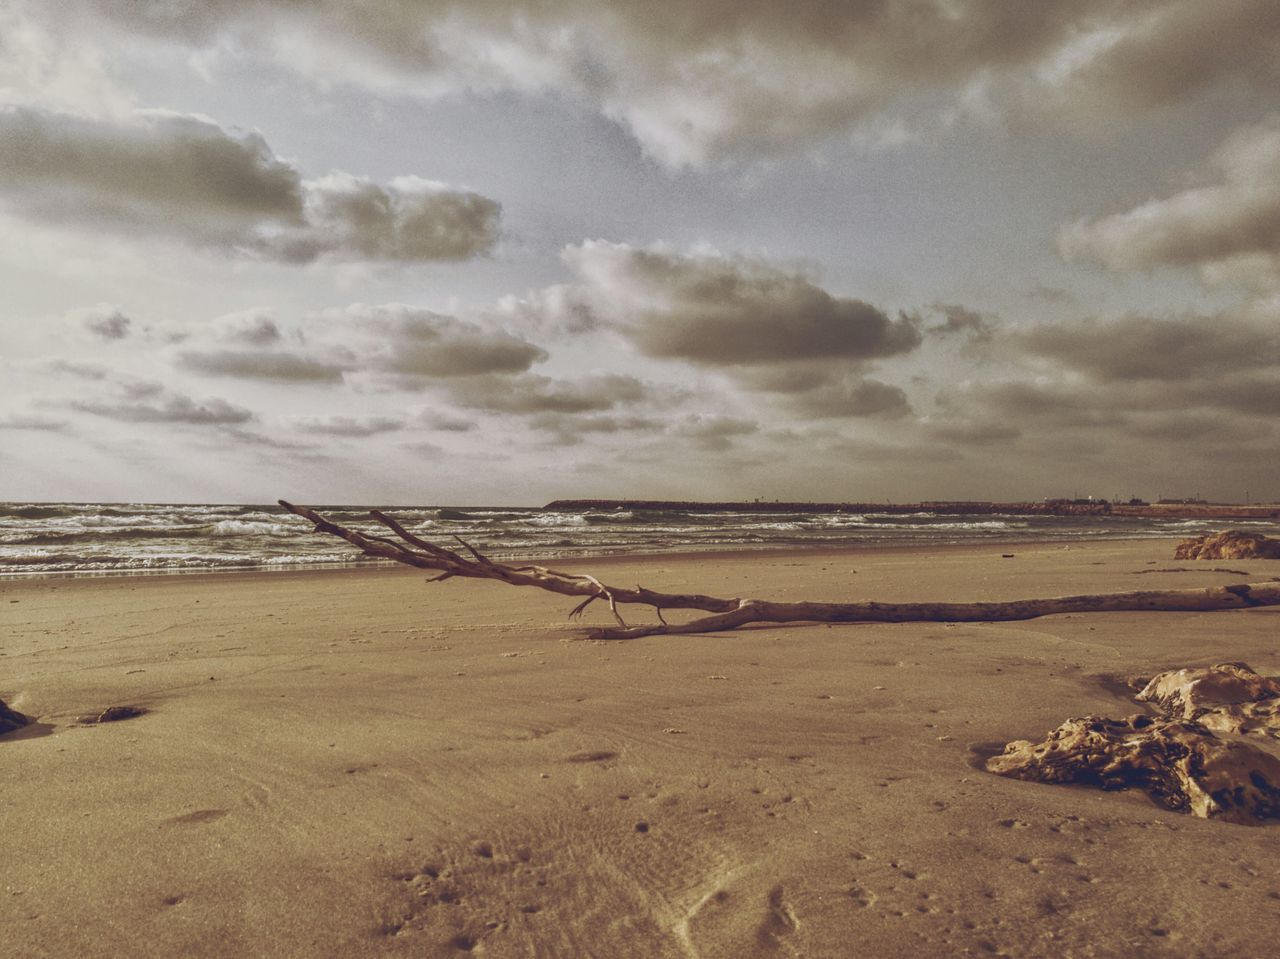 nature, sky, tranquility, beach, scenics, beauty in nature, cloud - sky, sea, tranquil scene, outdoors, water, no people, day, sand, landscape, horizon over water